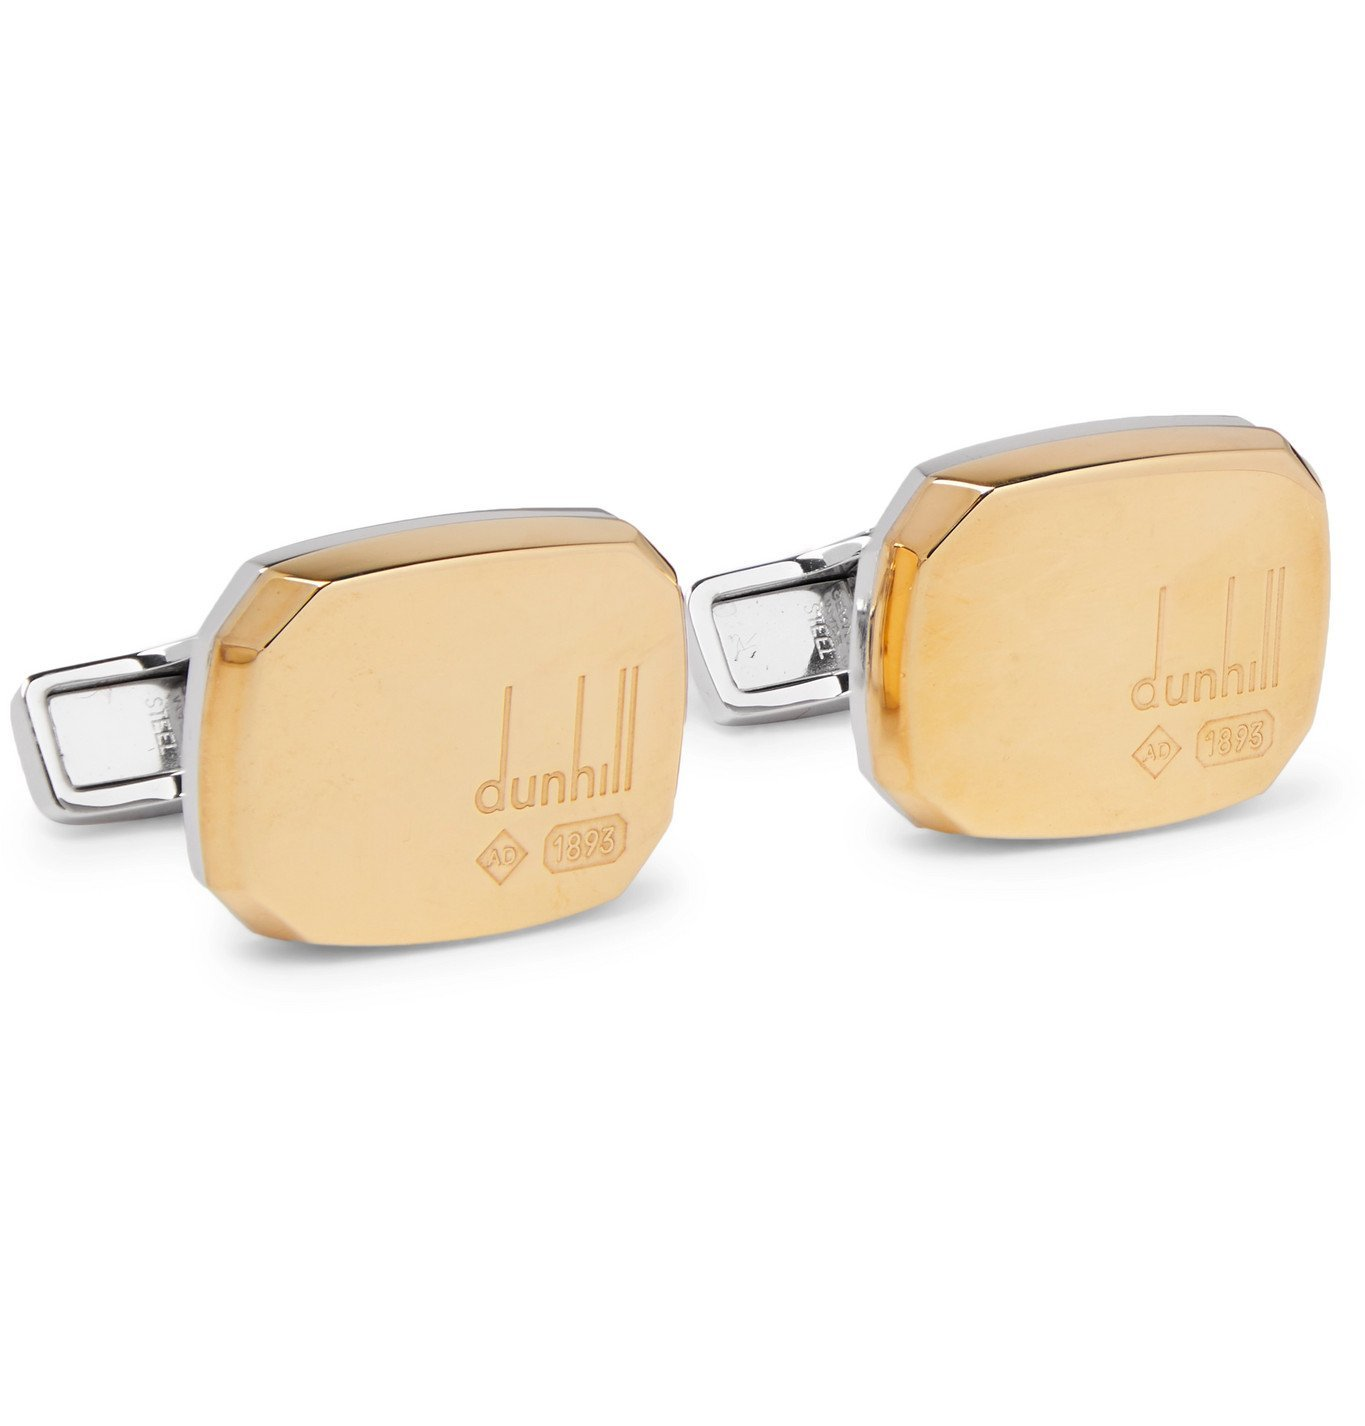 DUNHILL - Gold-Plated Sterling Silver Cufflinks - Gold